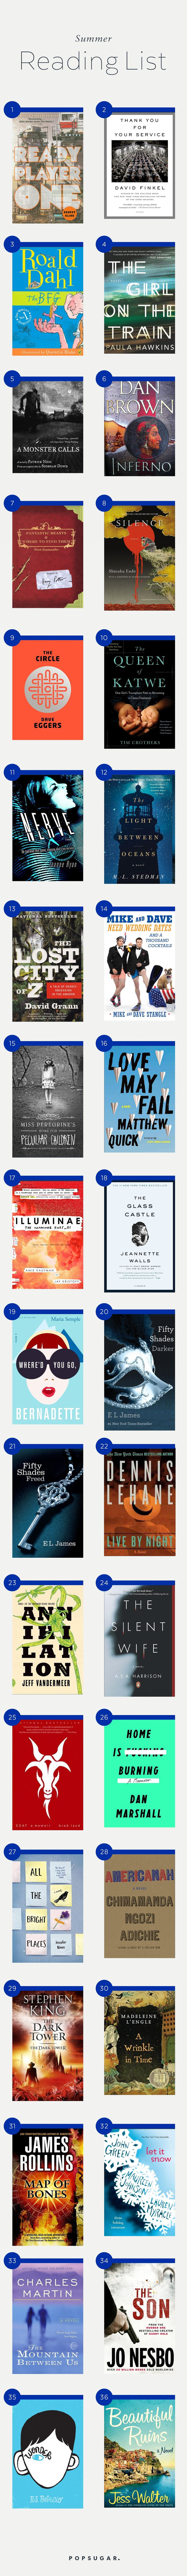 There are so many books out there, but for this list we're focusing on the latest books that are being turned into movies. So sit back, relax, and crack open one of these goodies.